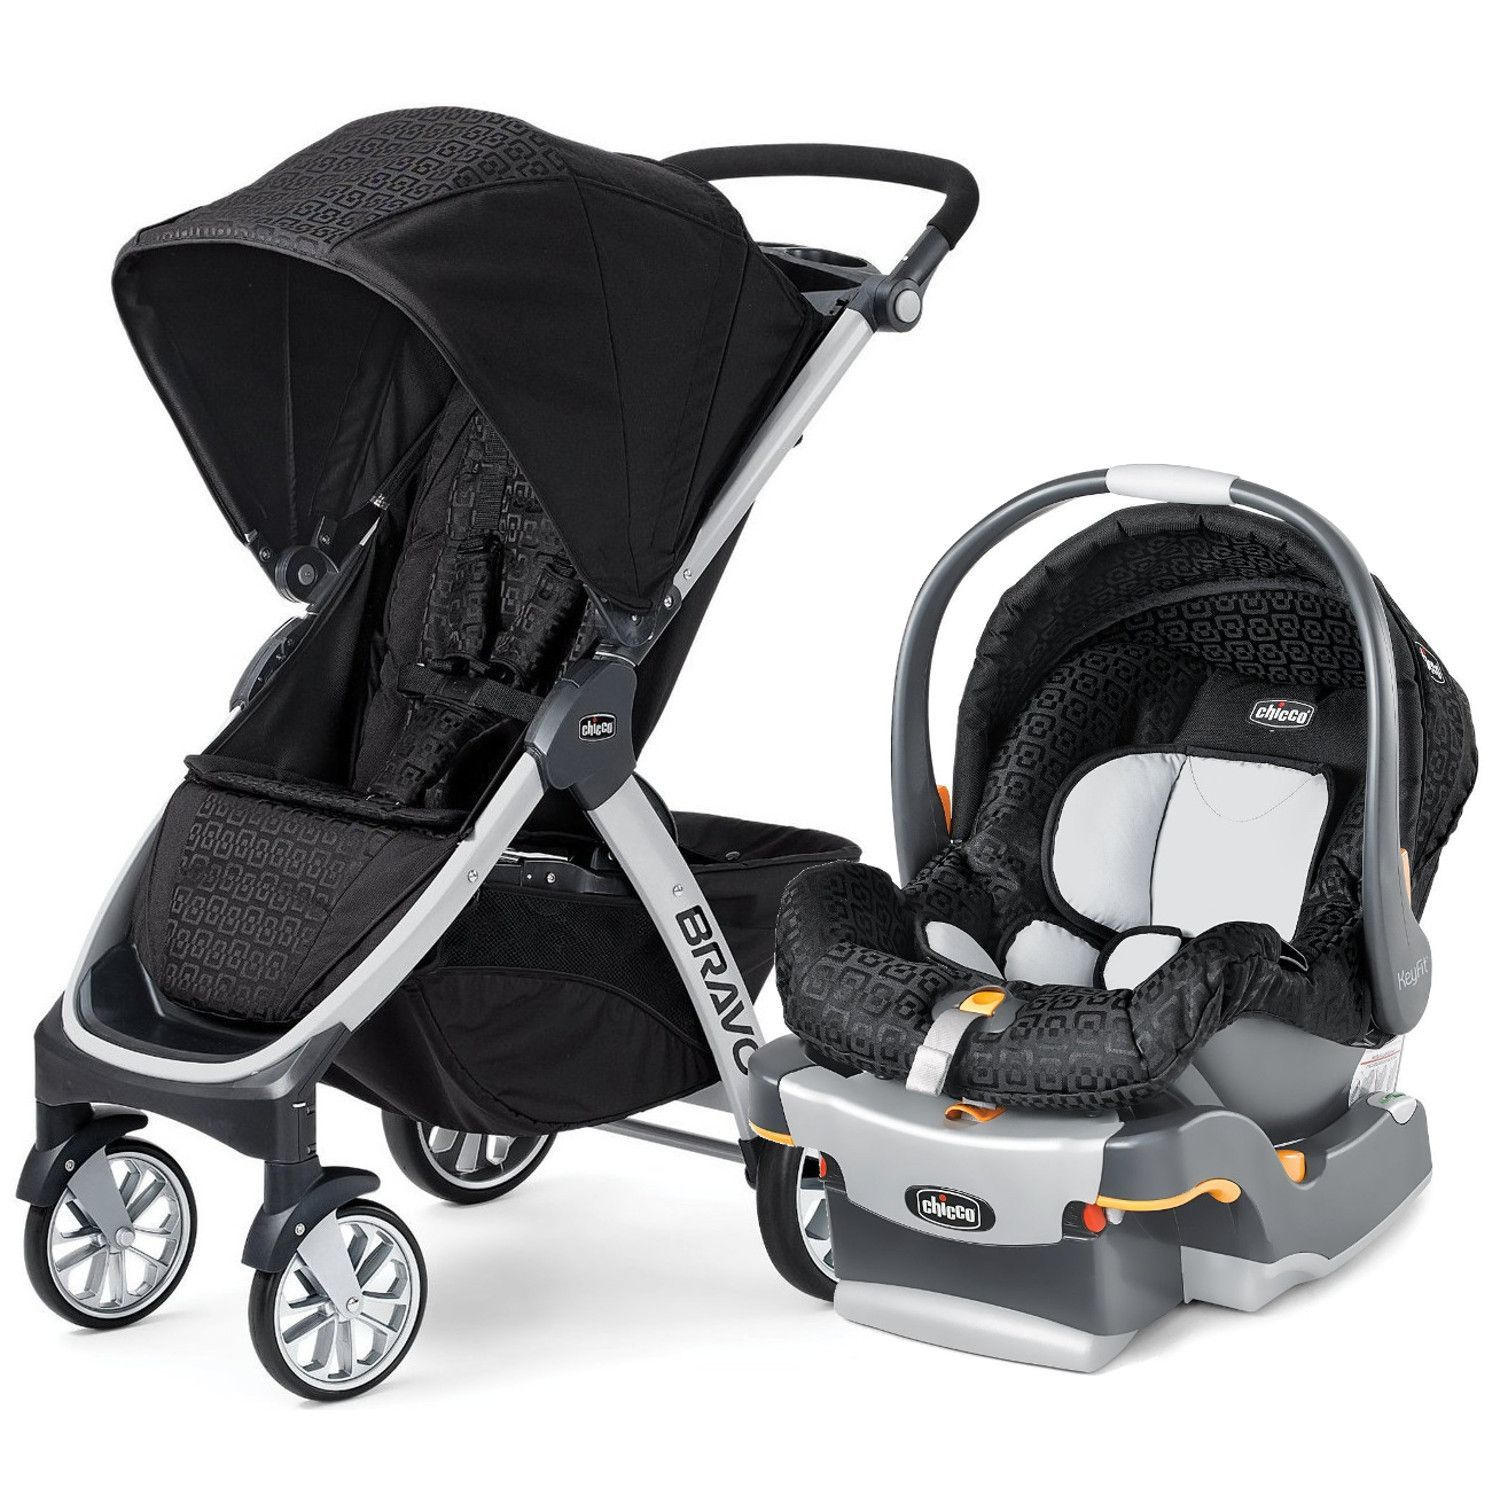 Chicco Bravo Stroller With KeyFit 22 Infant Car Seat